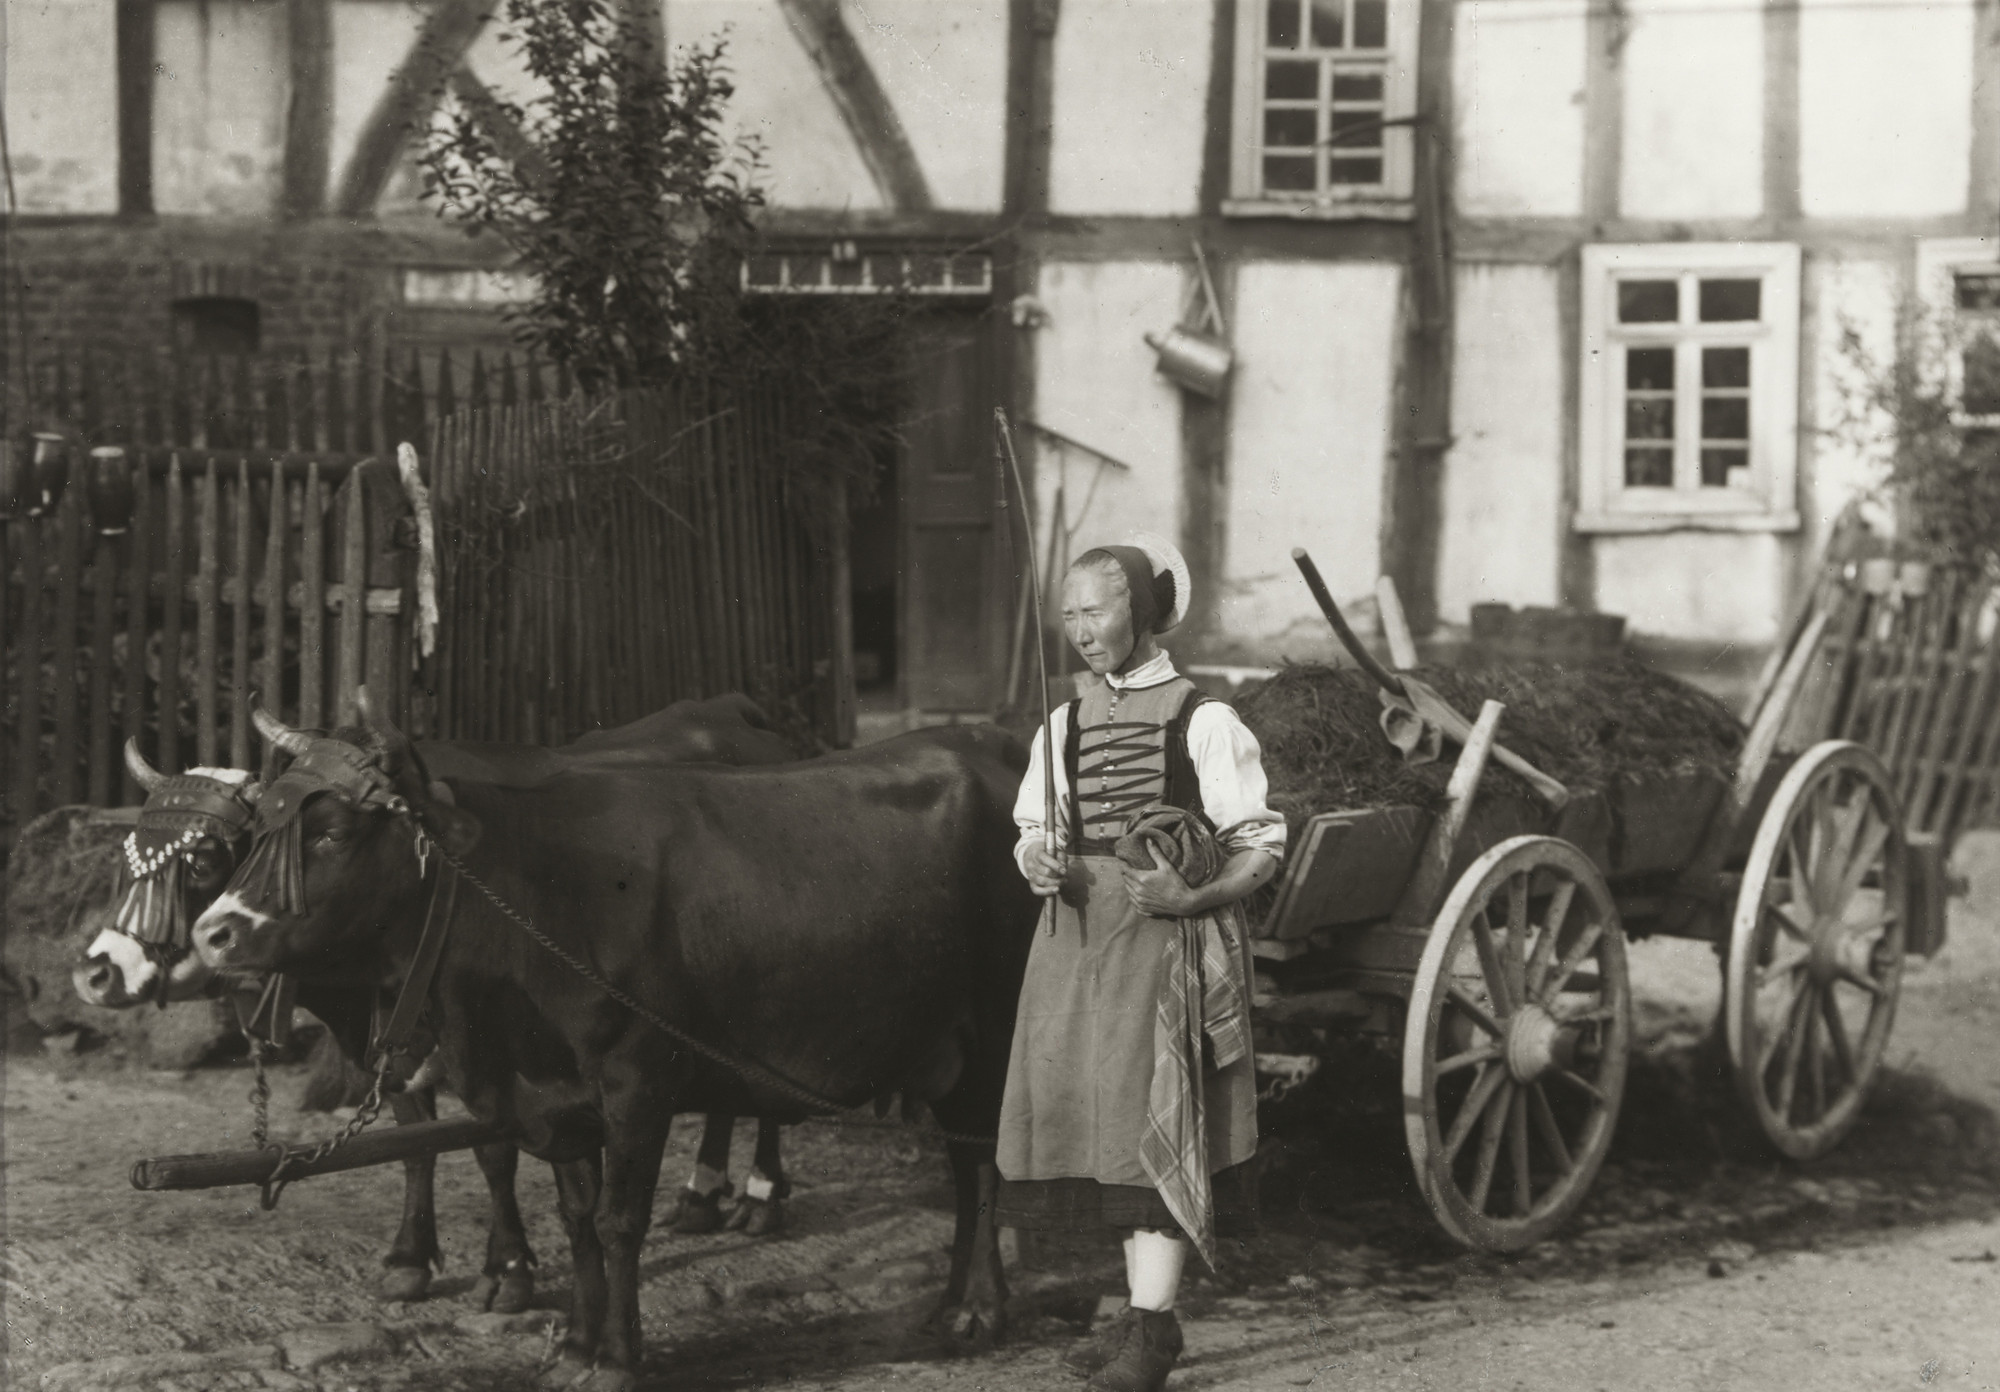 August Sander. Farm Girl, Hesse. 1913